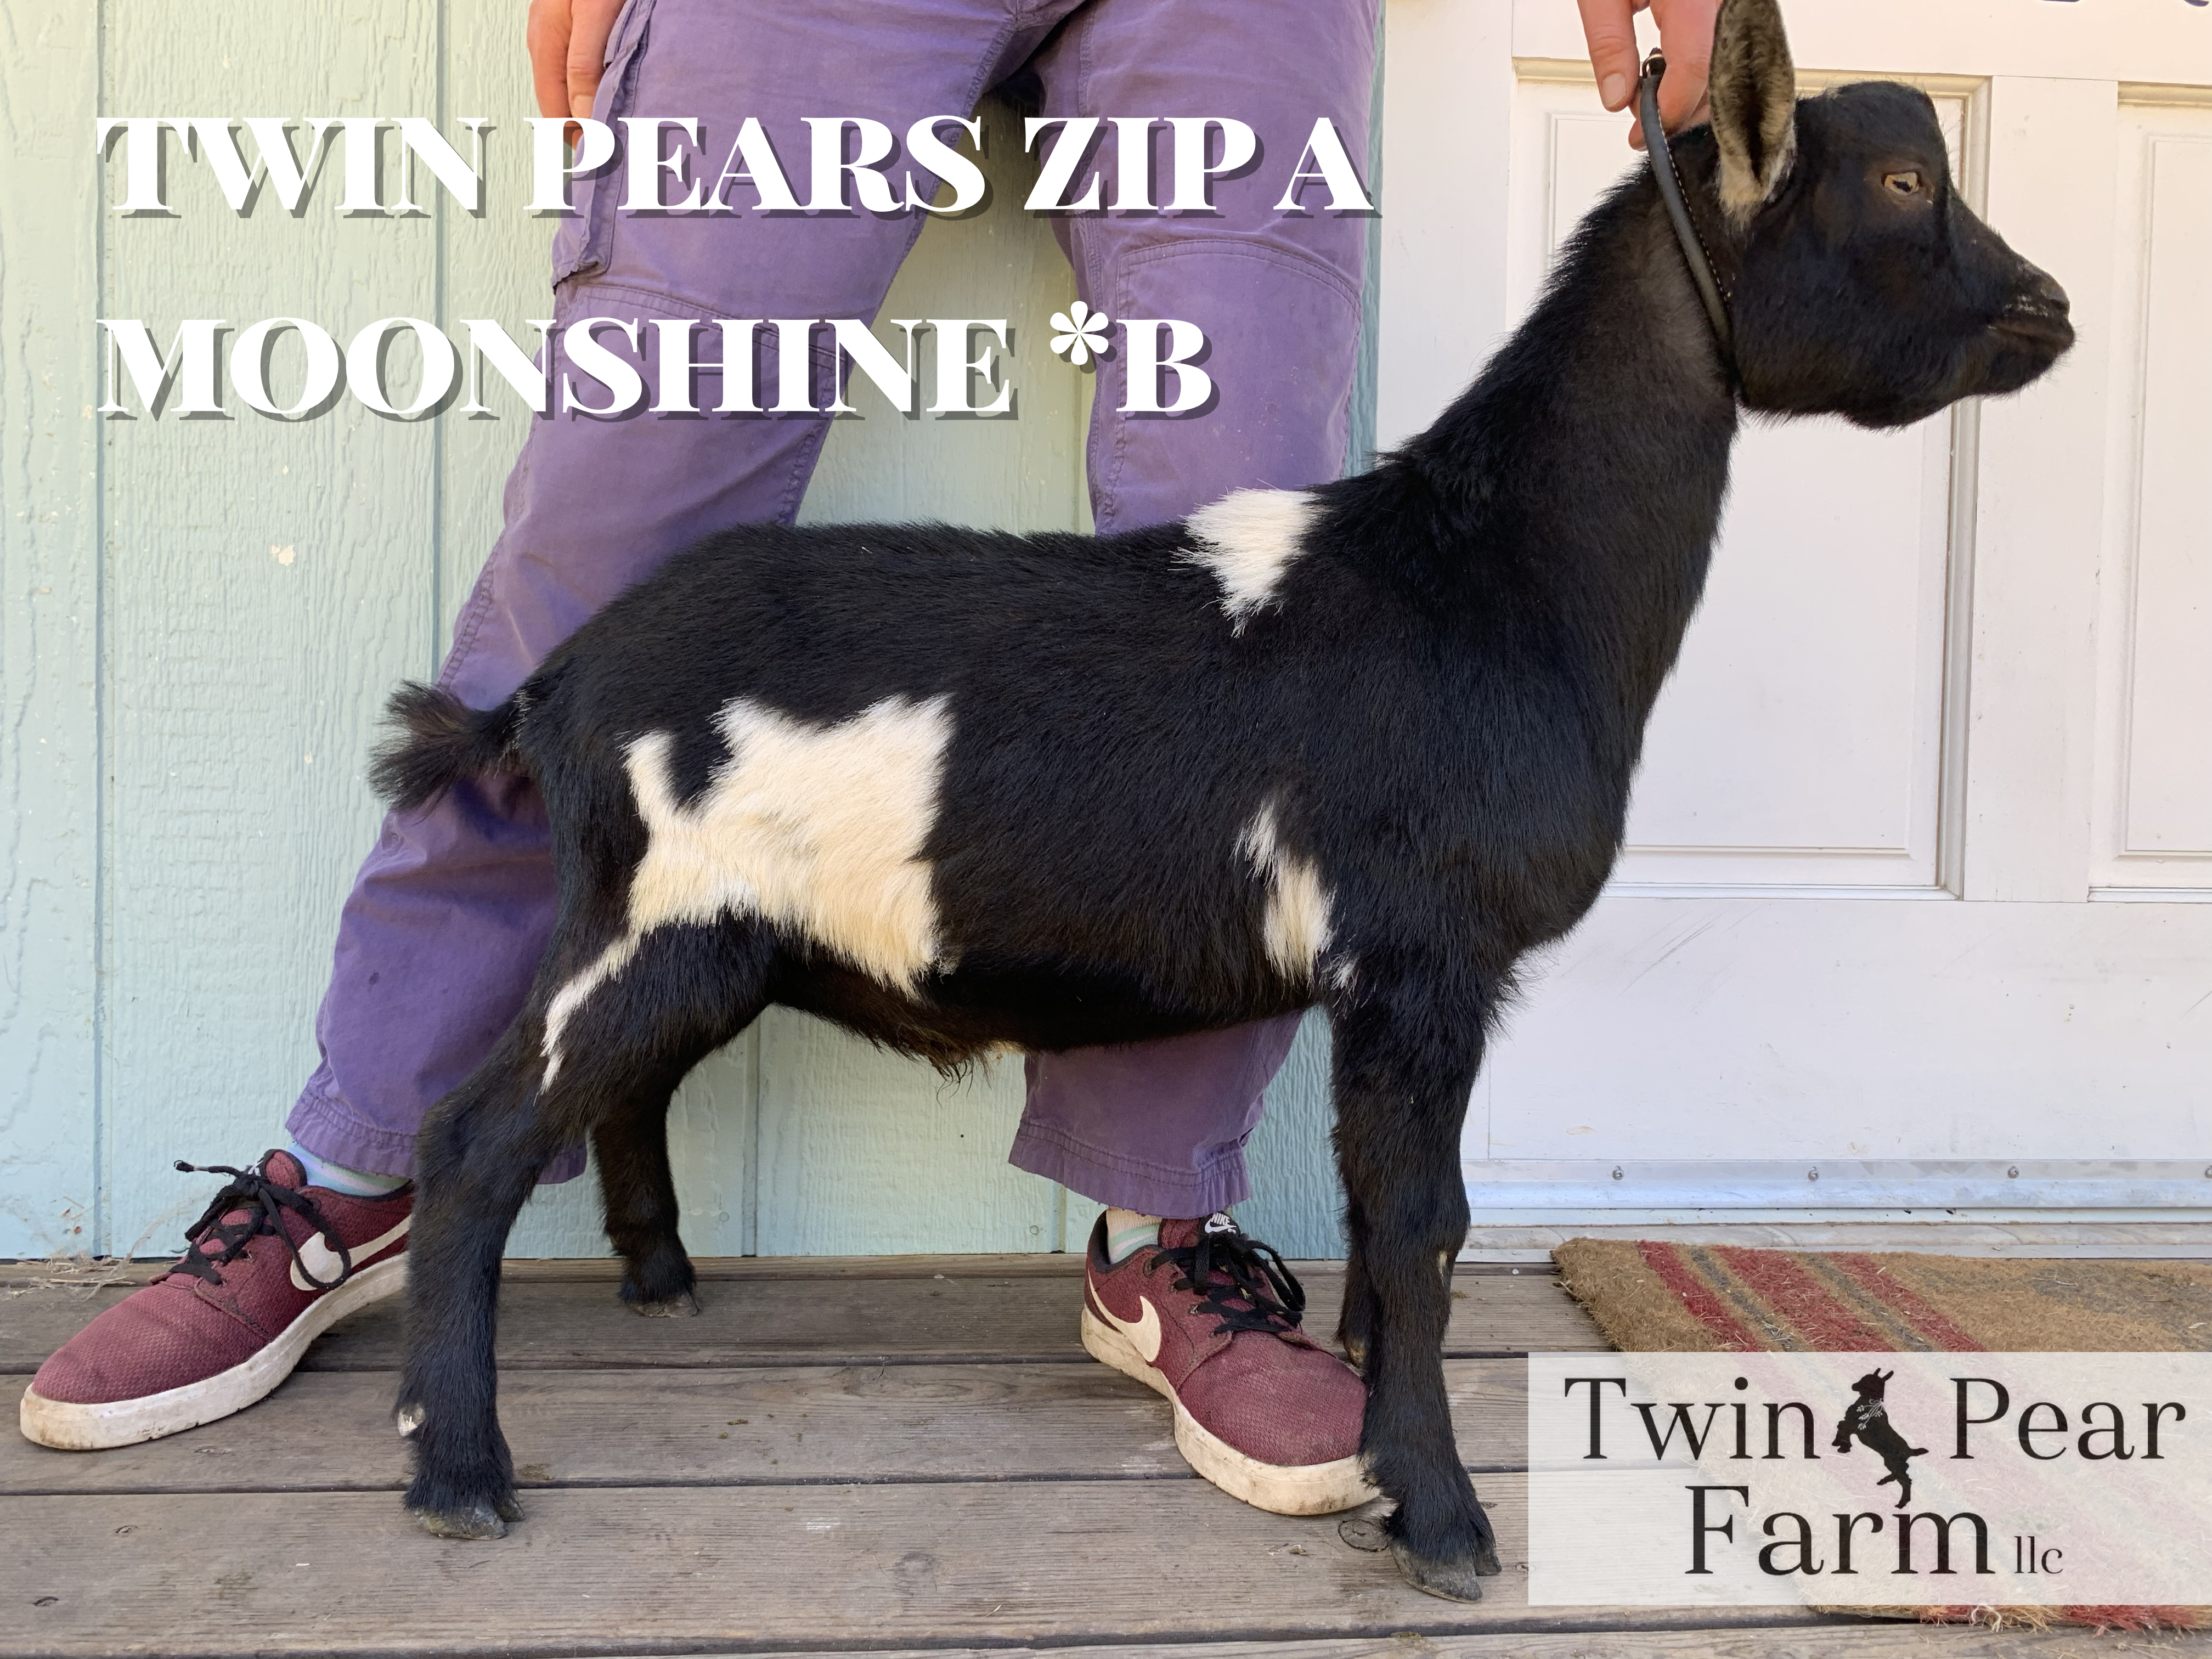 https://twinpearfarm.com/wp-content/uploads/2019/06/moonshine.jpg